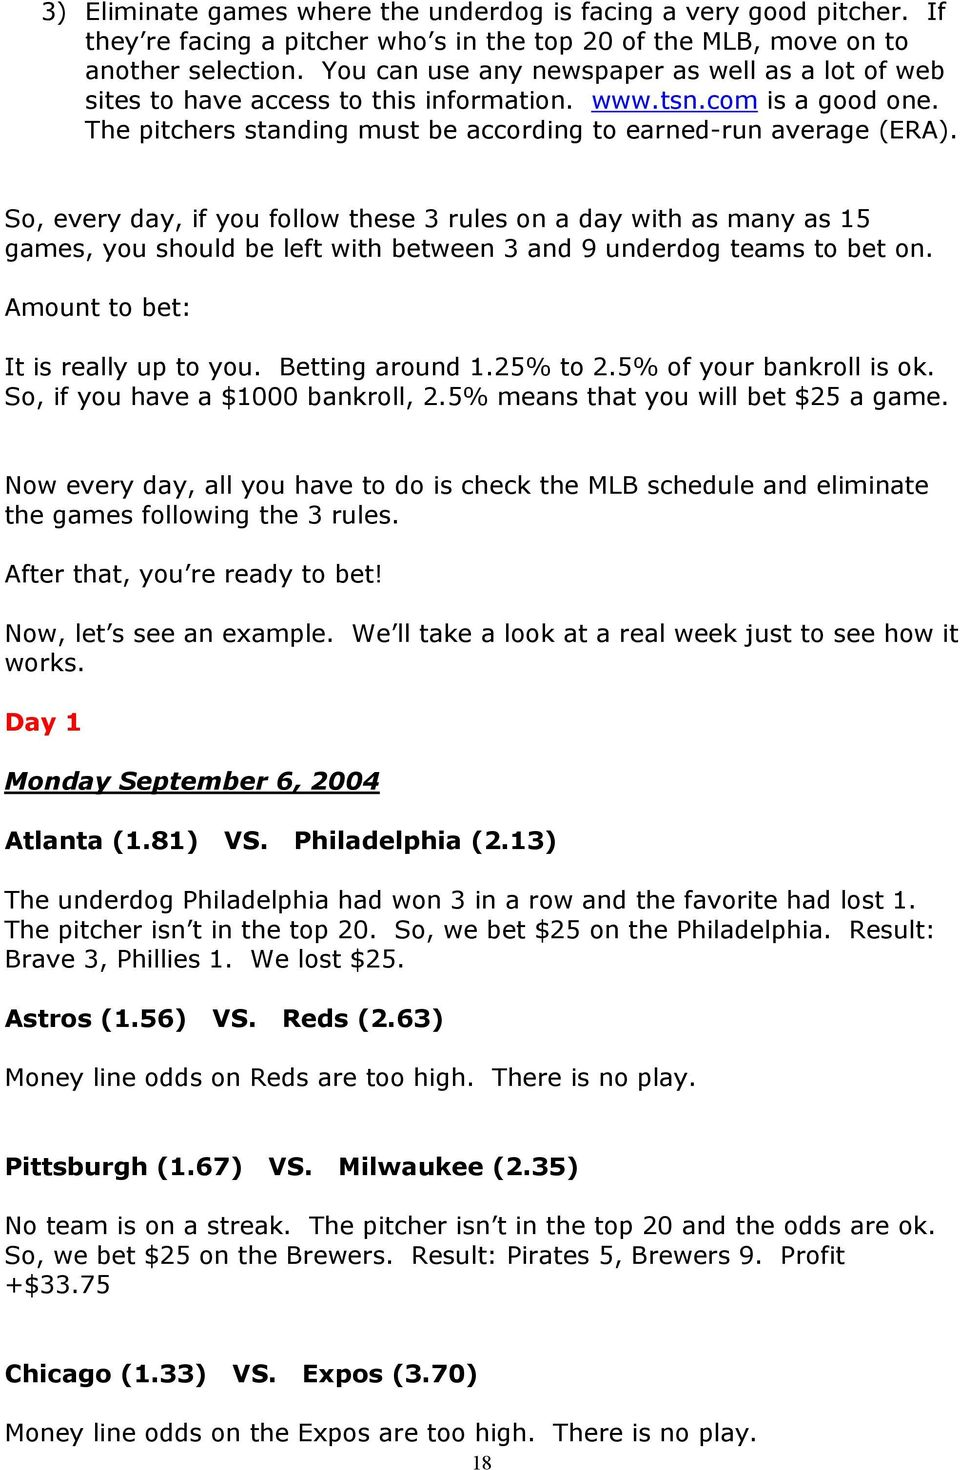 So, every day, if you follow these 3 rules on a day with as many as 15 games, you should be left with between 3 and 9 underdog teams to bet on. Amount to bet: It is really up to you. Betting around 1.